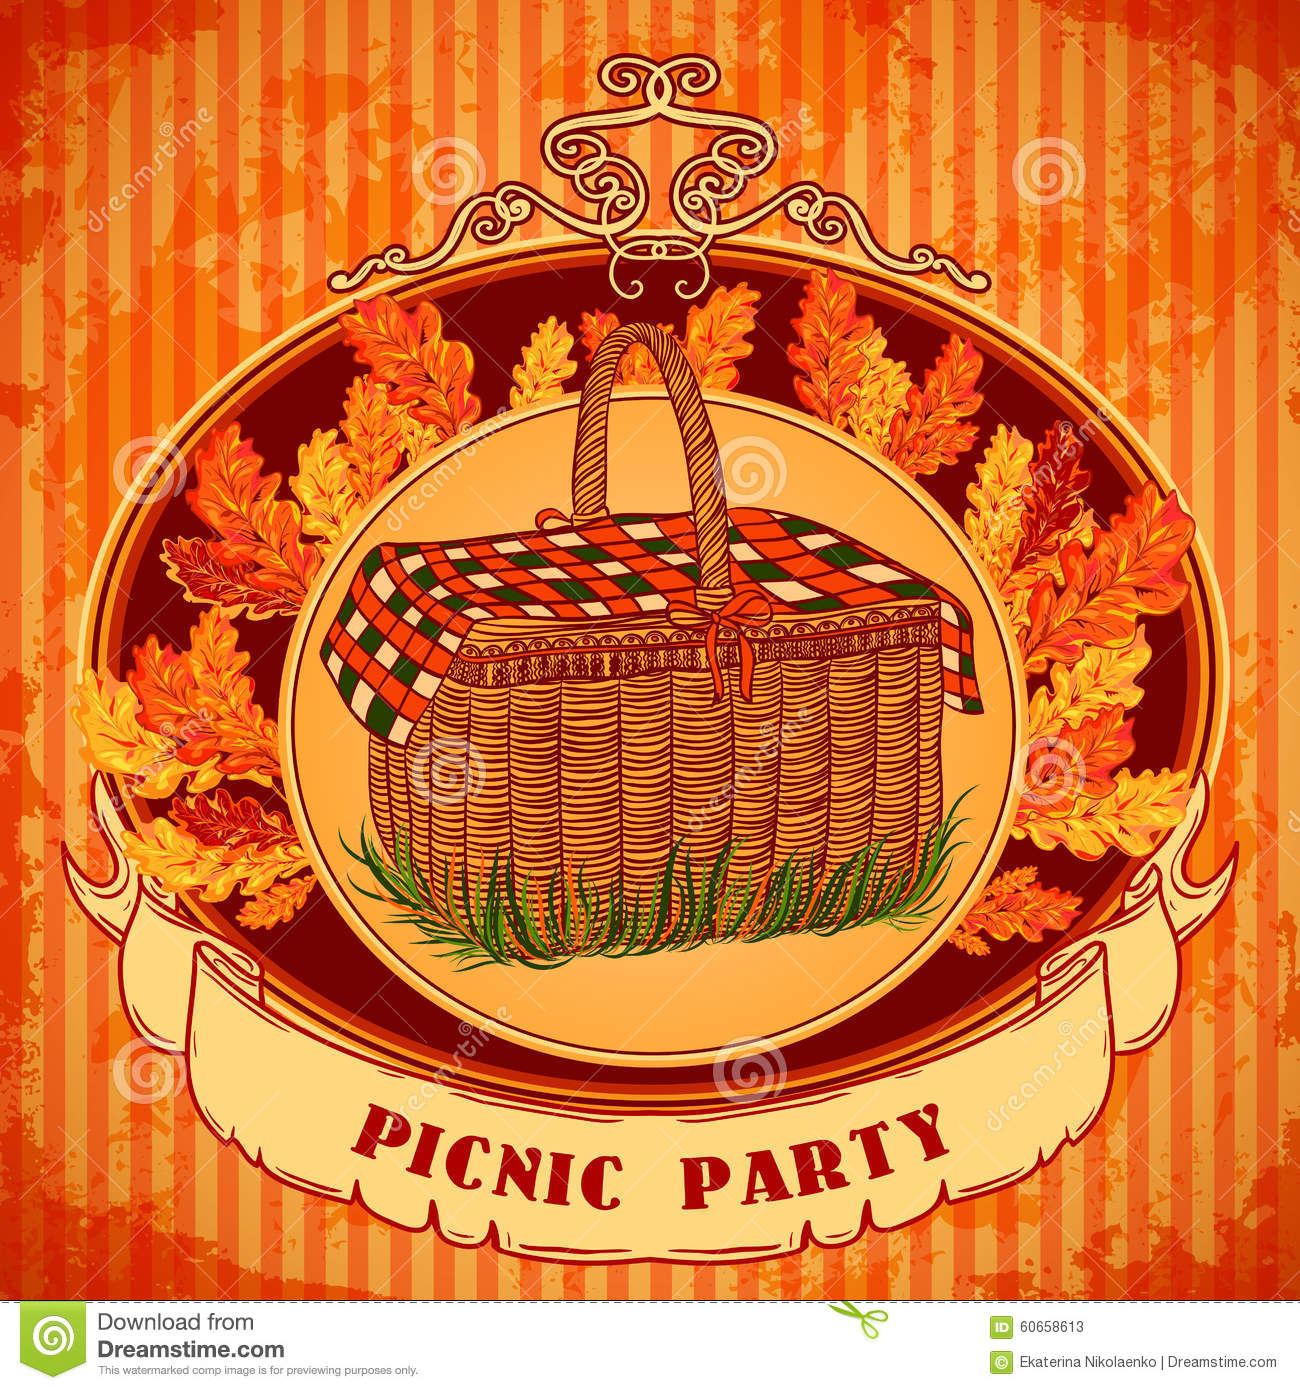 Picnic party in meadow with picnic basket and autumn leaves grass download picnic party in meadow with picnic basket and autumn leaves grass retro invitation stopboris Choice Image